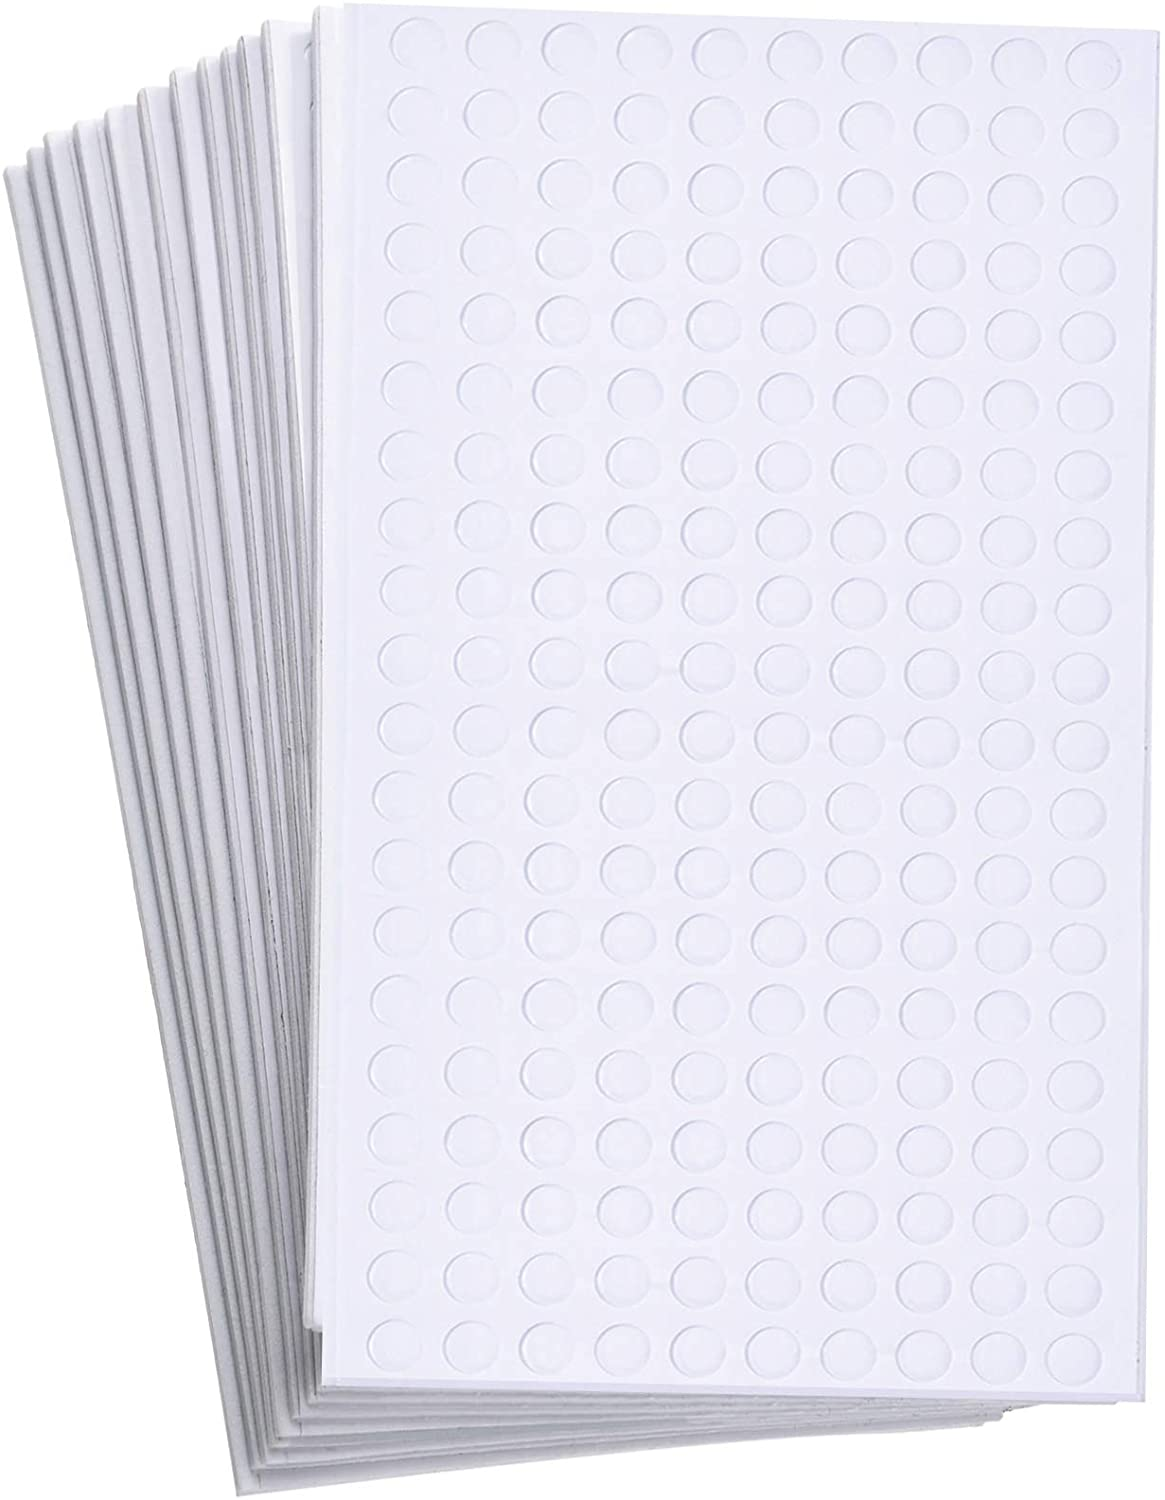 2400 Pieces Foam Dots Dual-Adhesive 3D Foam Tapes Foam Pop Dots Adhesive Mount for Craft DIY Art or Office Supplies, 12 Sheets, Round (0.24 Inch)